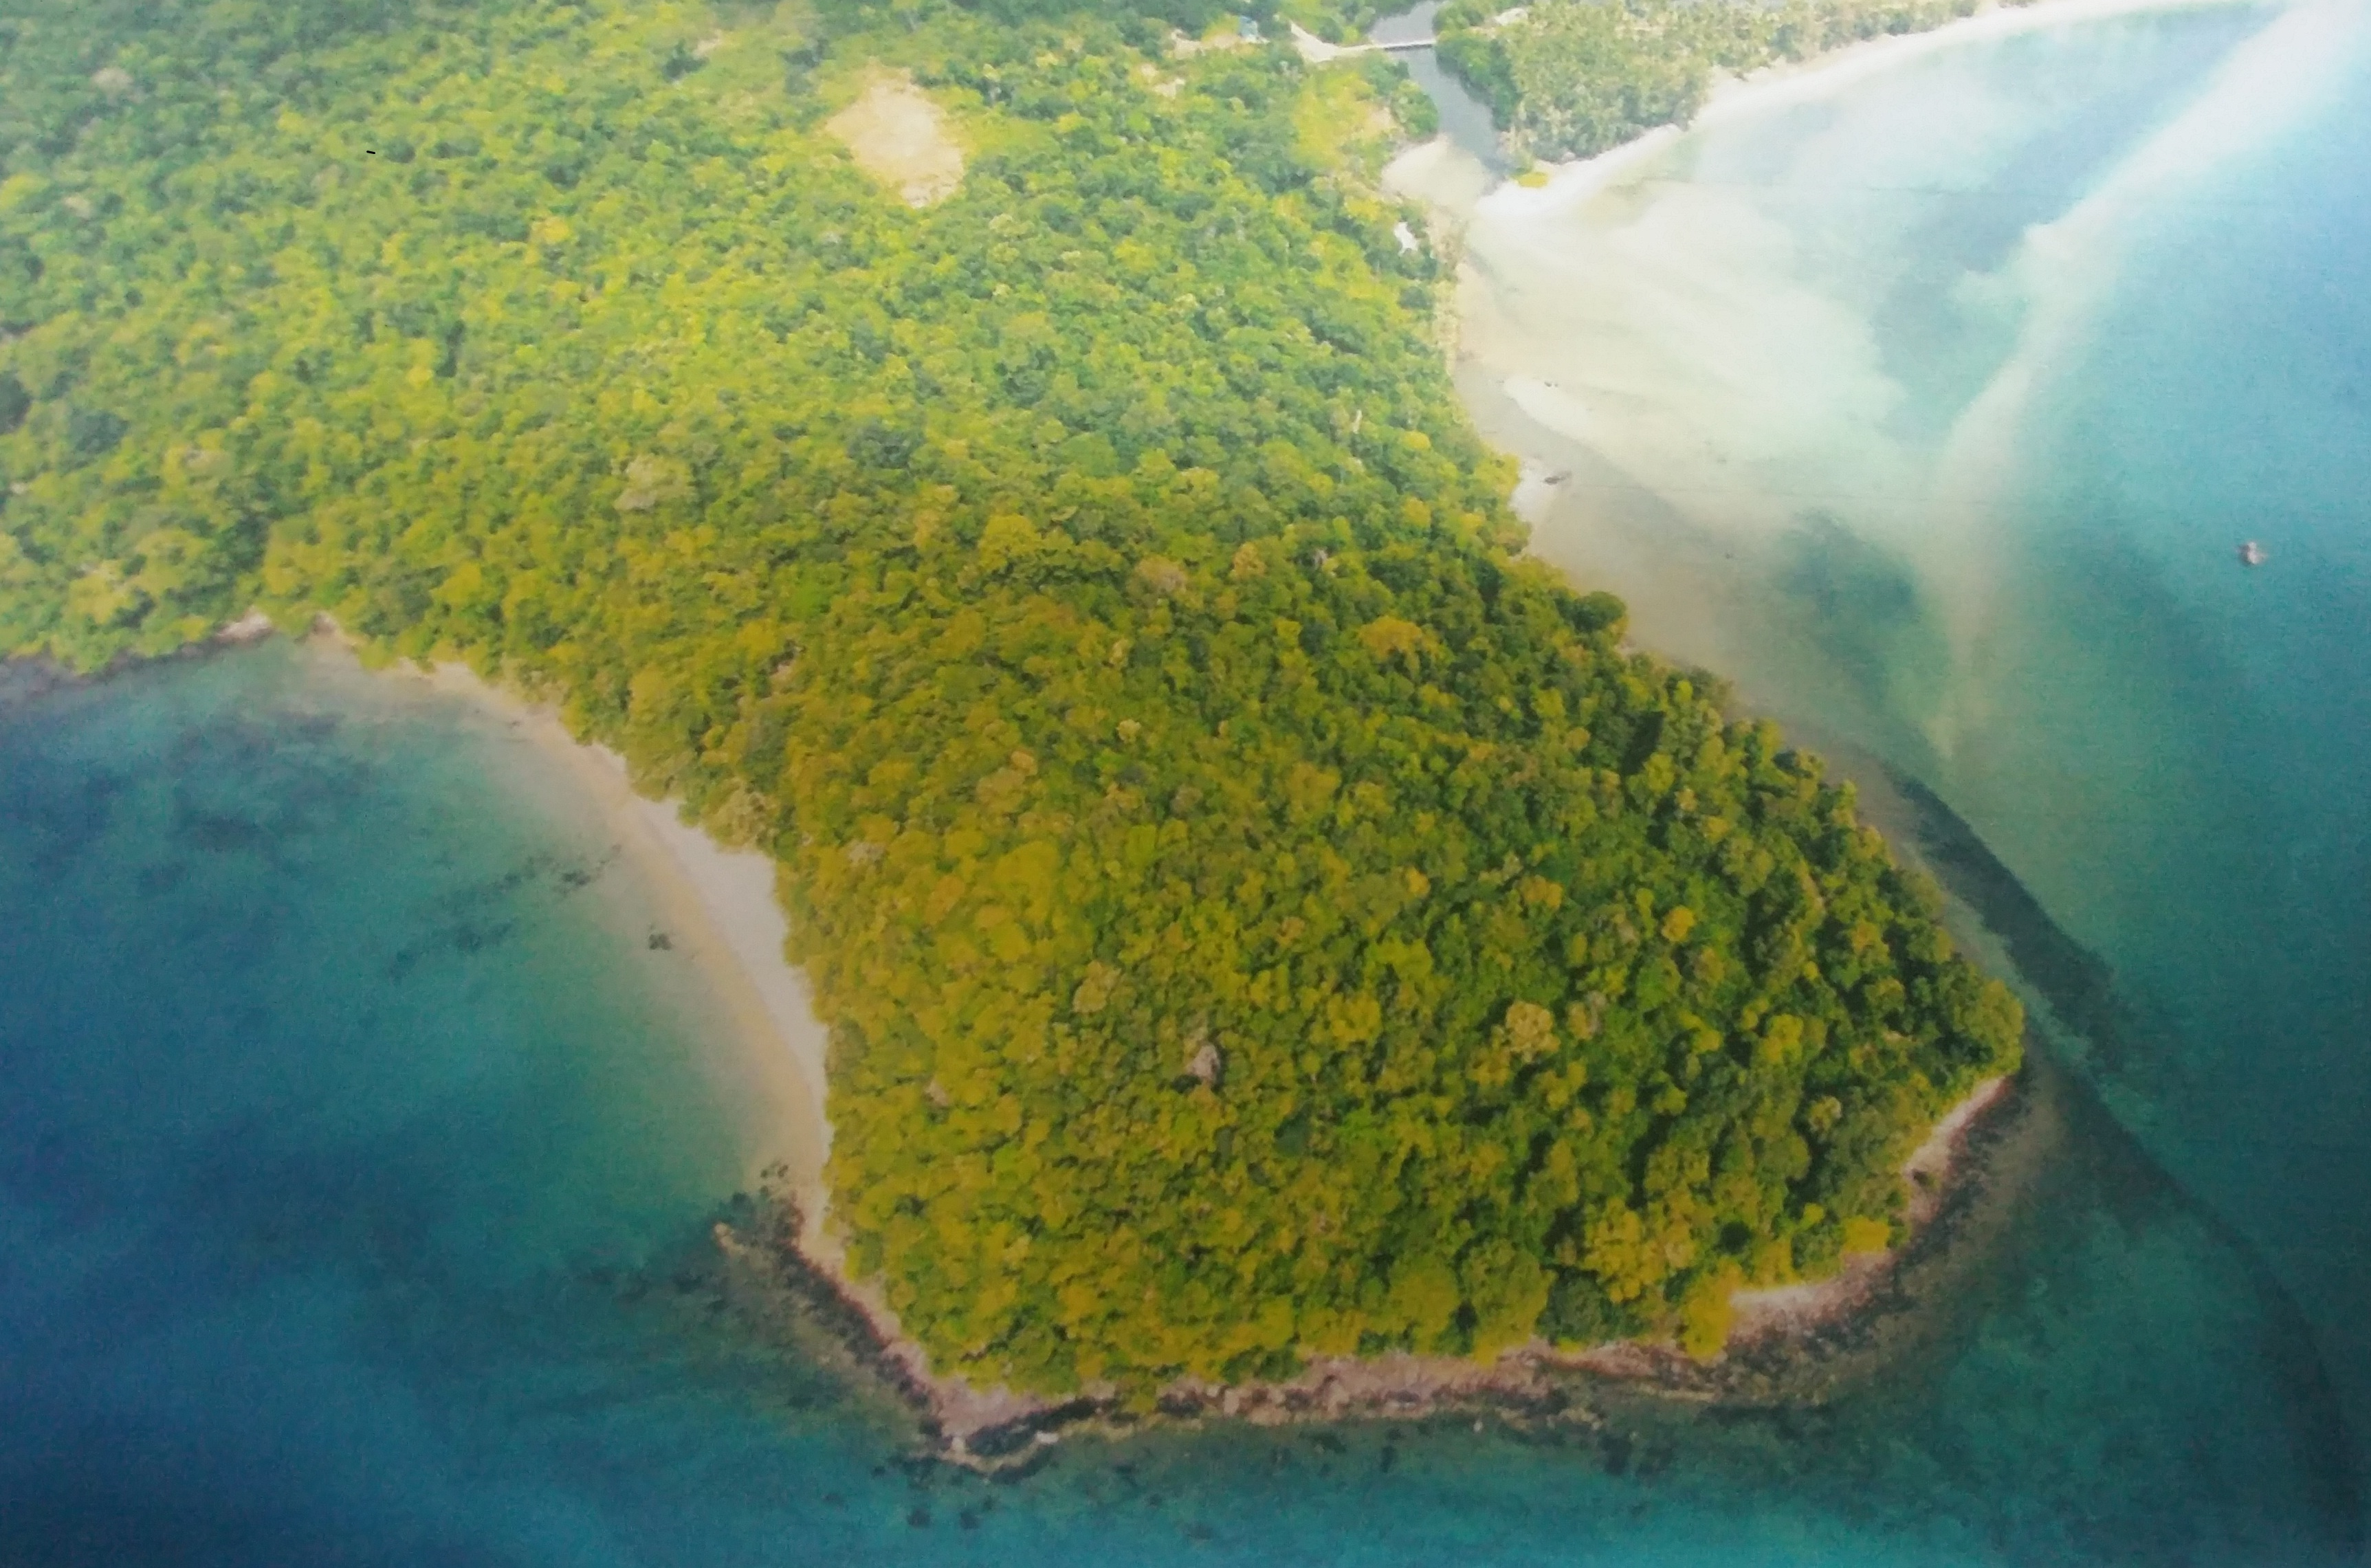 Land for Sale (Next to the Beach)